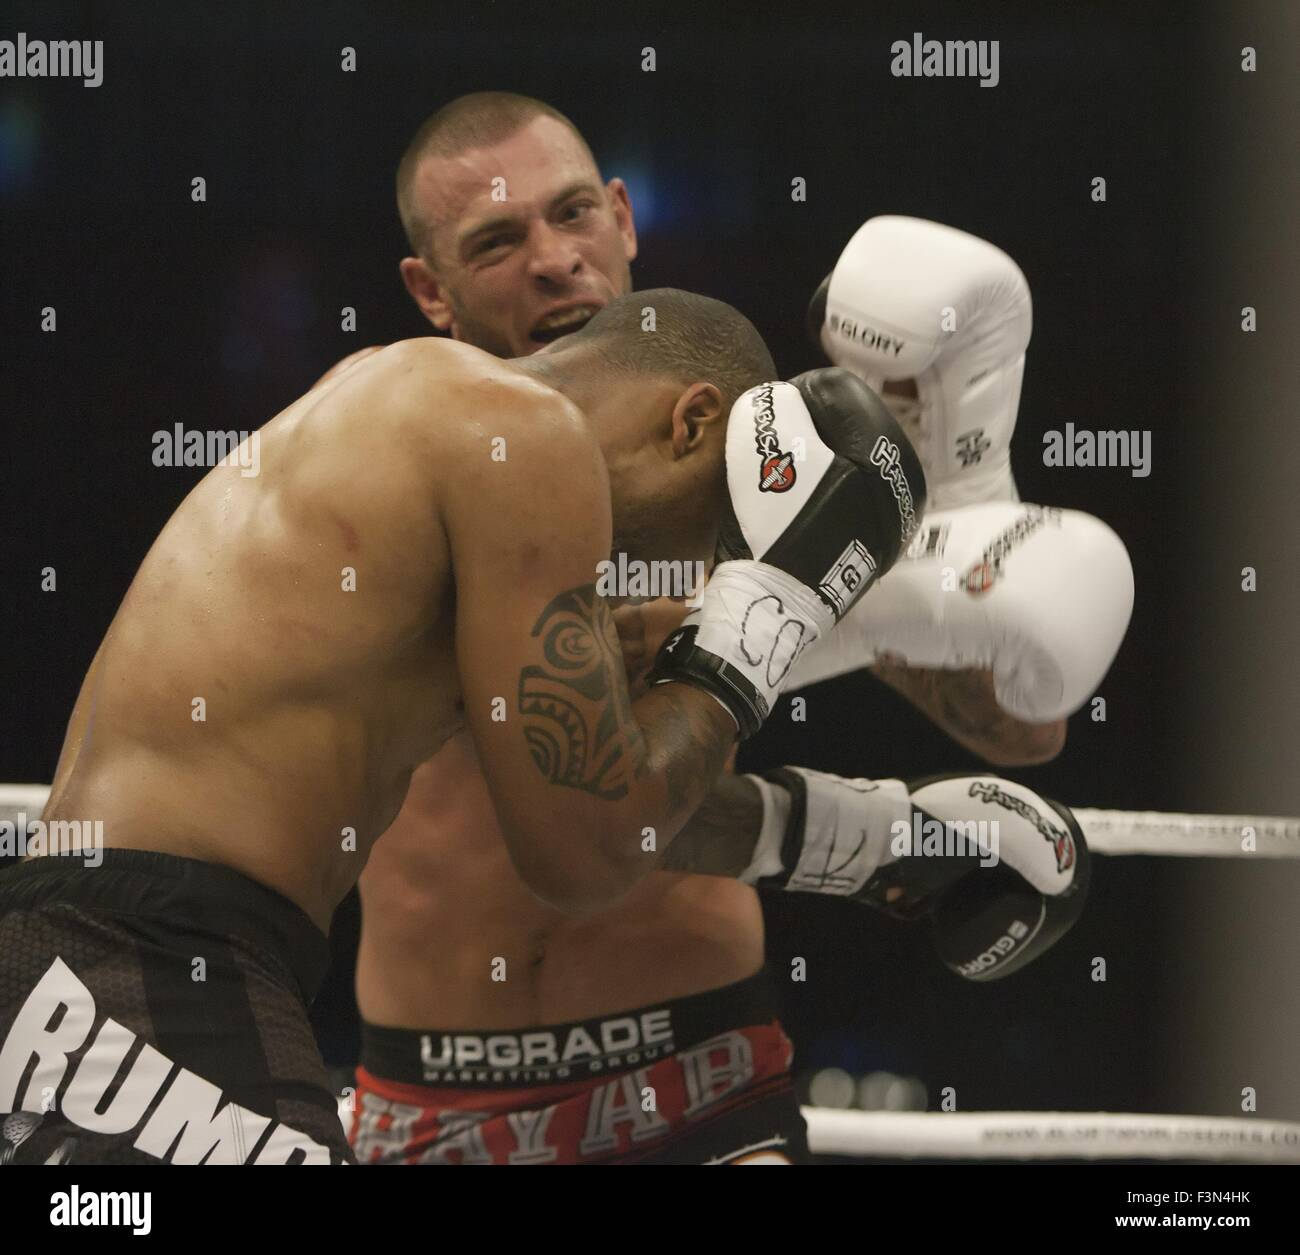 Denver, Colorado, USA. 9th Oct, 2015. Glory 24 fighter JOE SCHILLING, top, lands a punch to the side of JASON WILNIS - Stock Image